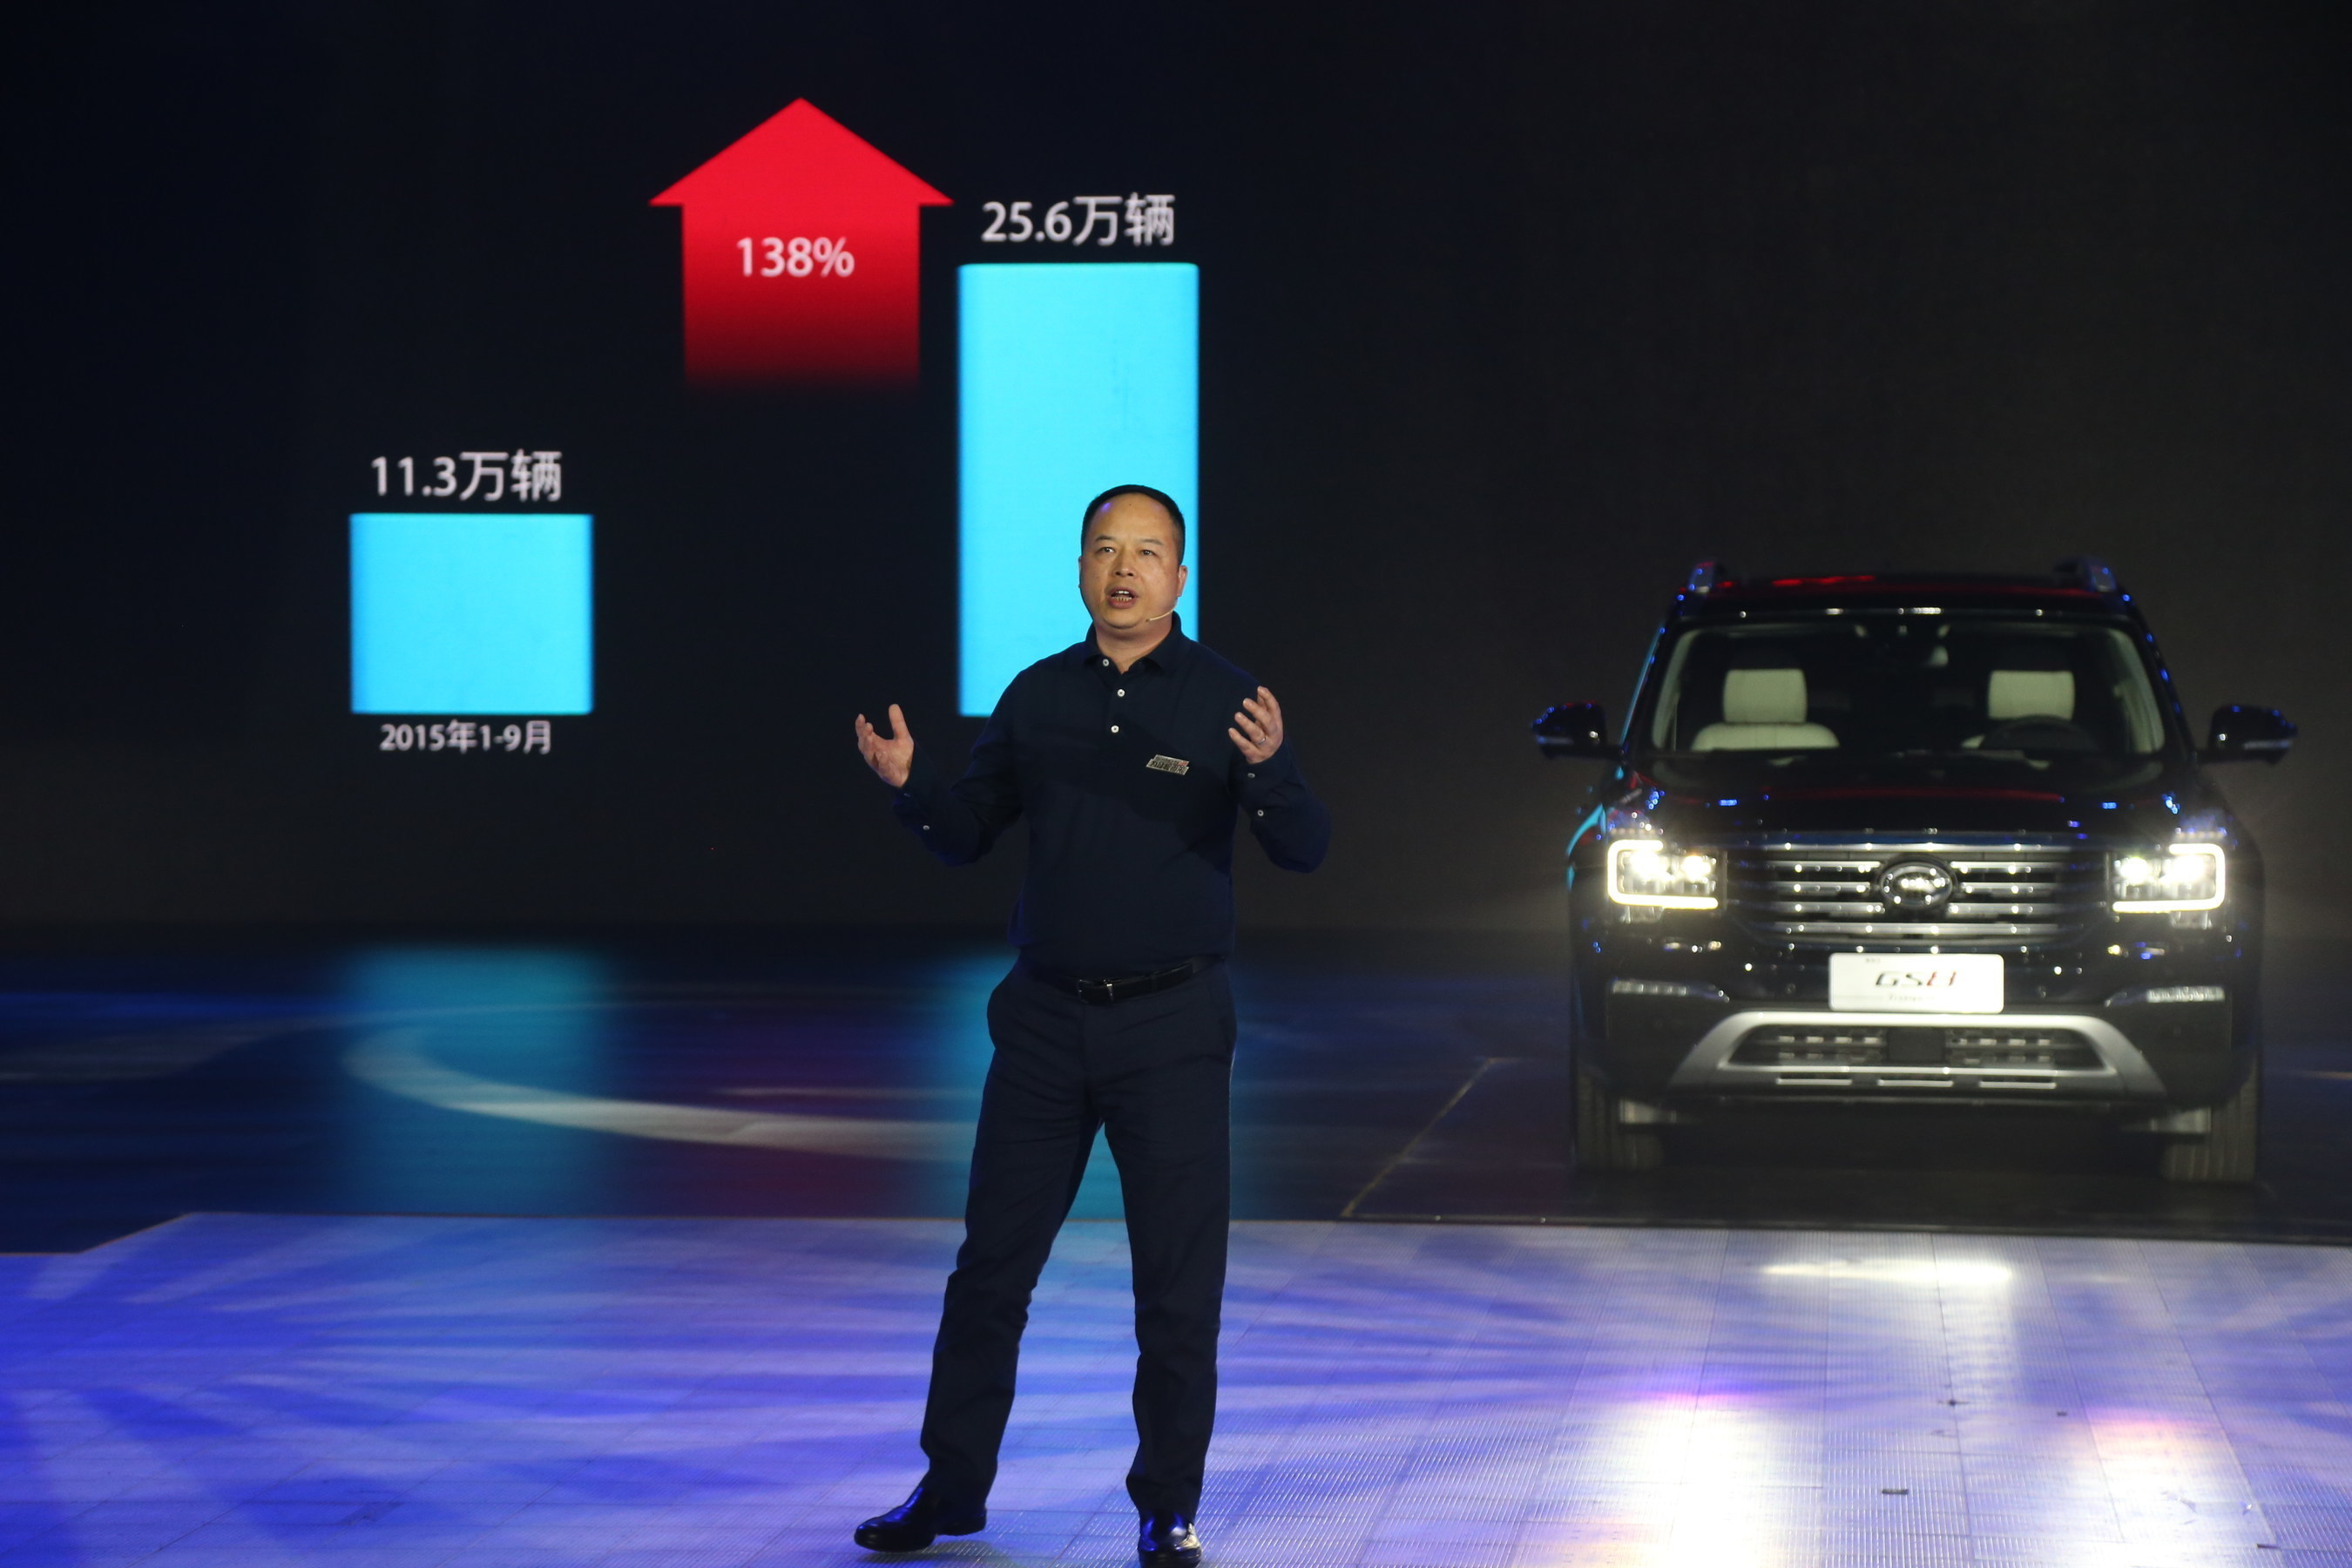 General Manager of GAC Motor Yu Jun revealed the price of GS8